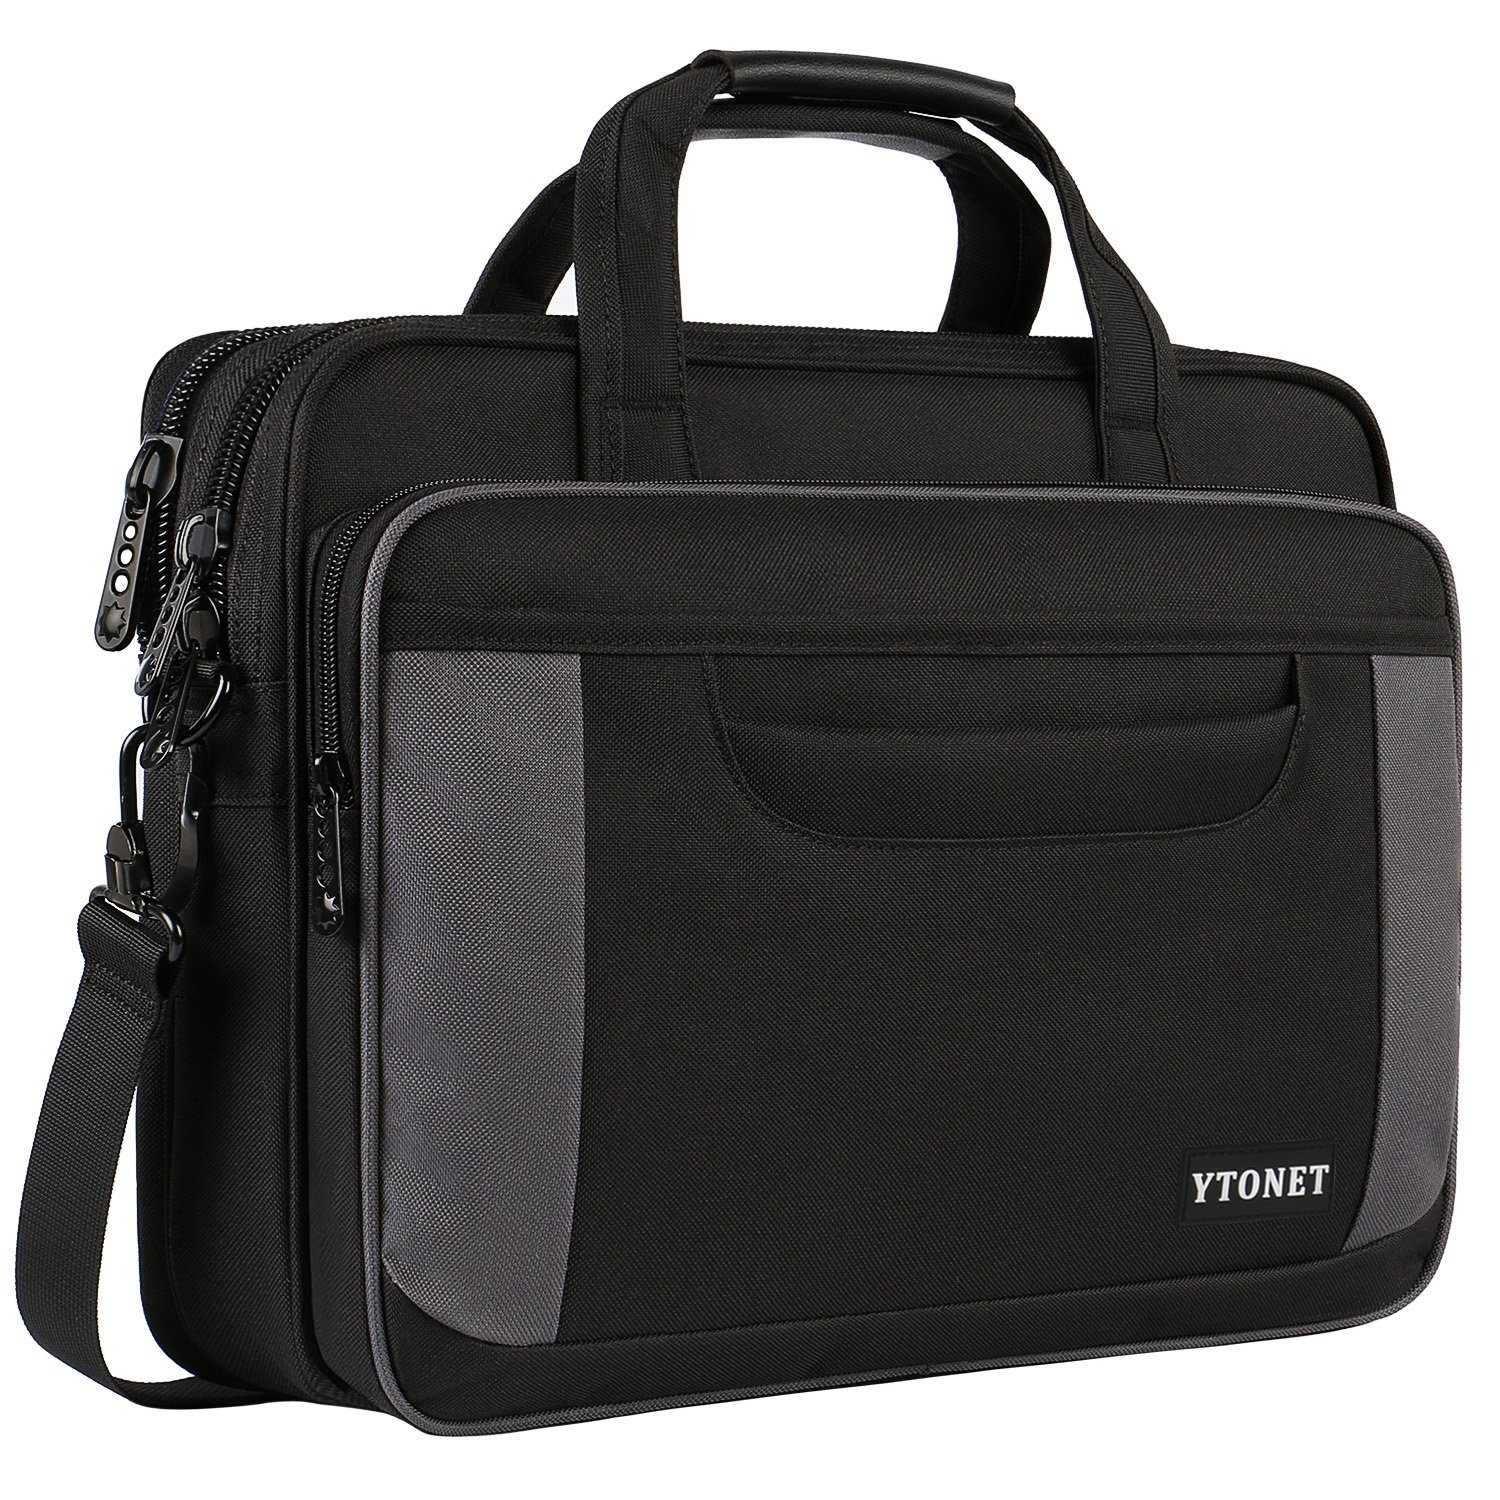 Ytonet Laptop Briefcase,15.6 Inch Laptop Bag,Business Office Bag for Men Women,Stylish Nylon Multi-Functional Shoulder Messenger Bag for Notebook Computer Tablet MacBook Acer HP Dell Lenovo,Black Grey Cafeleo A-001